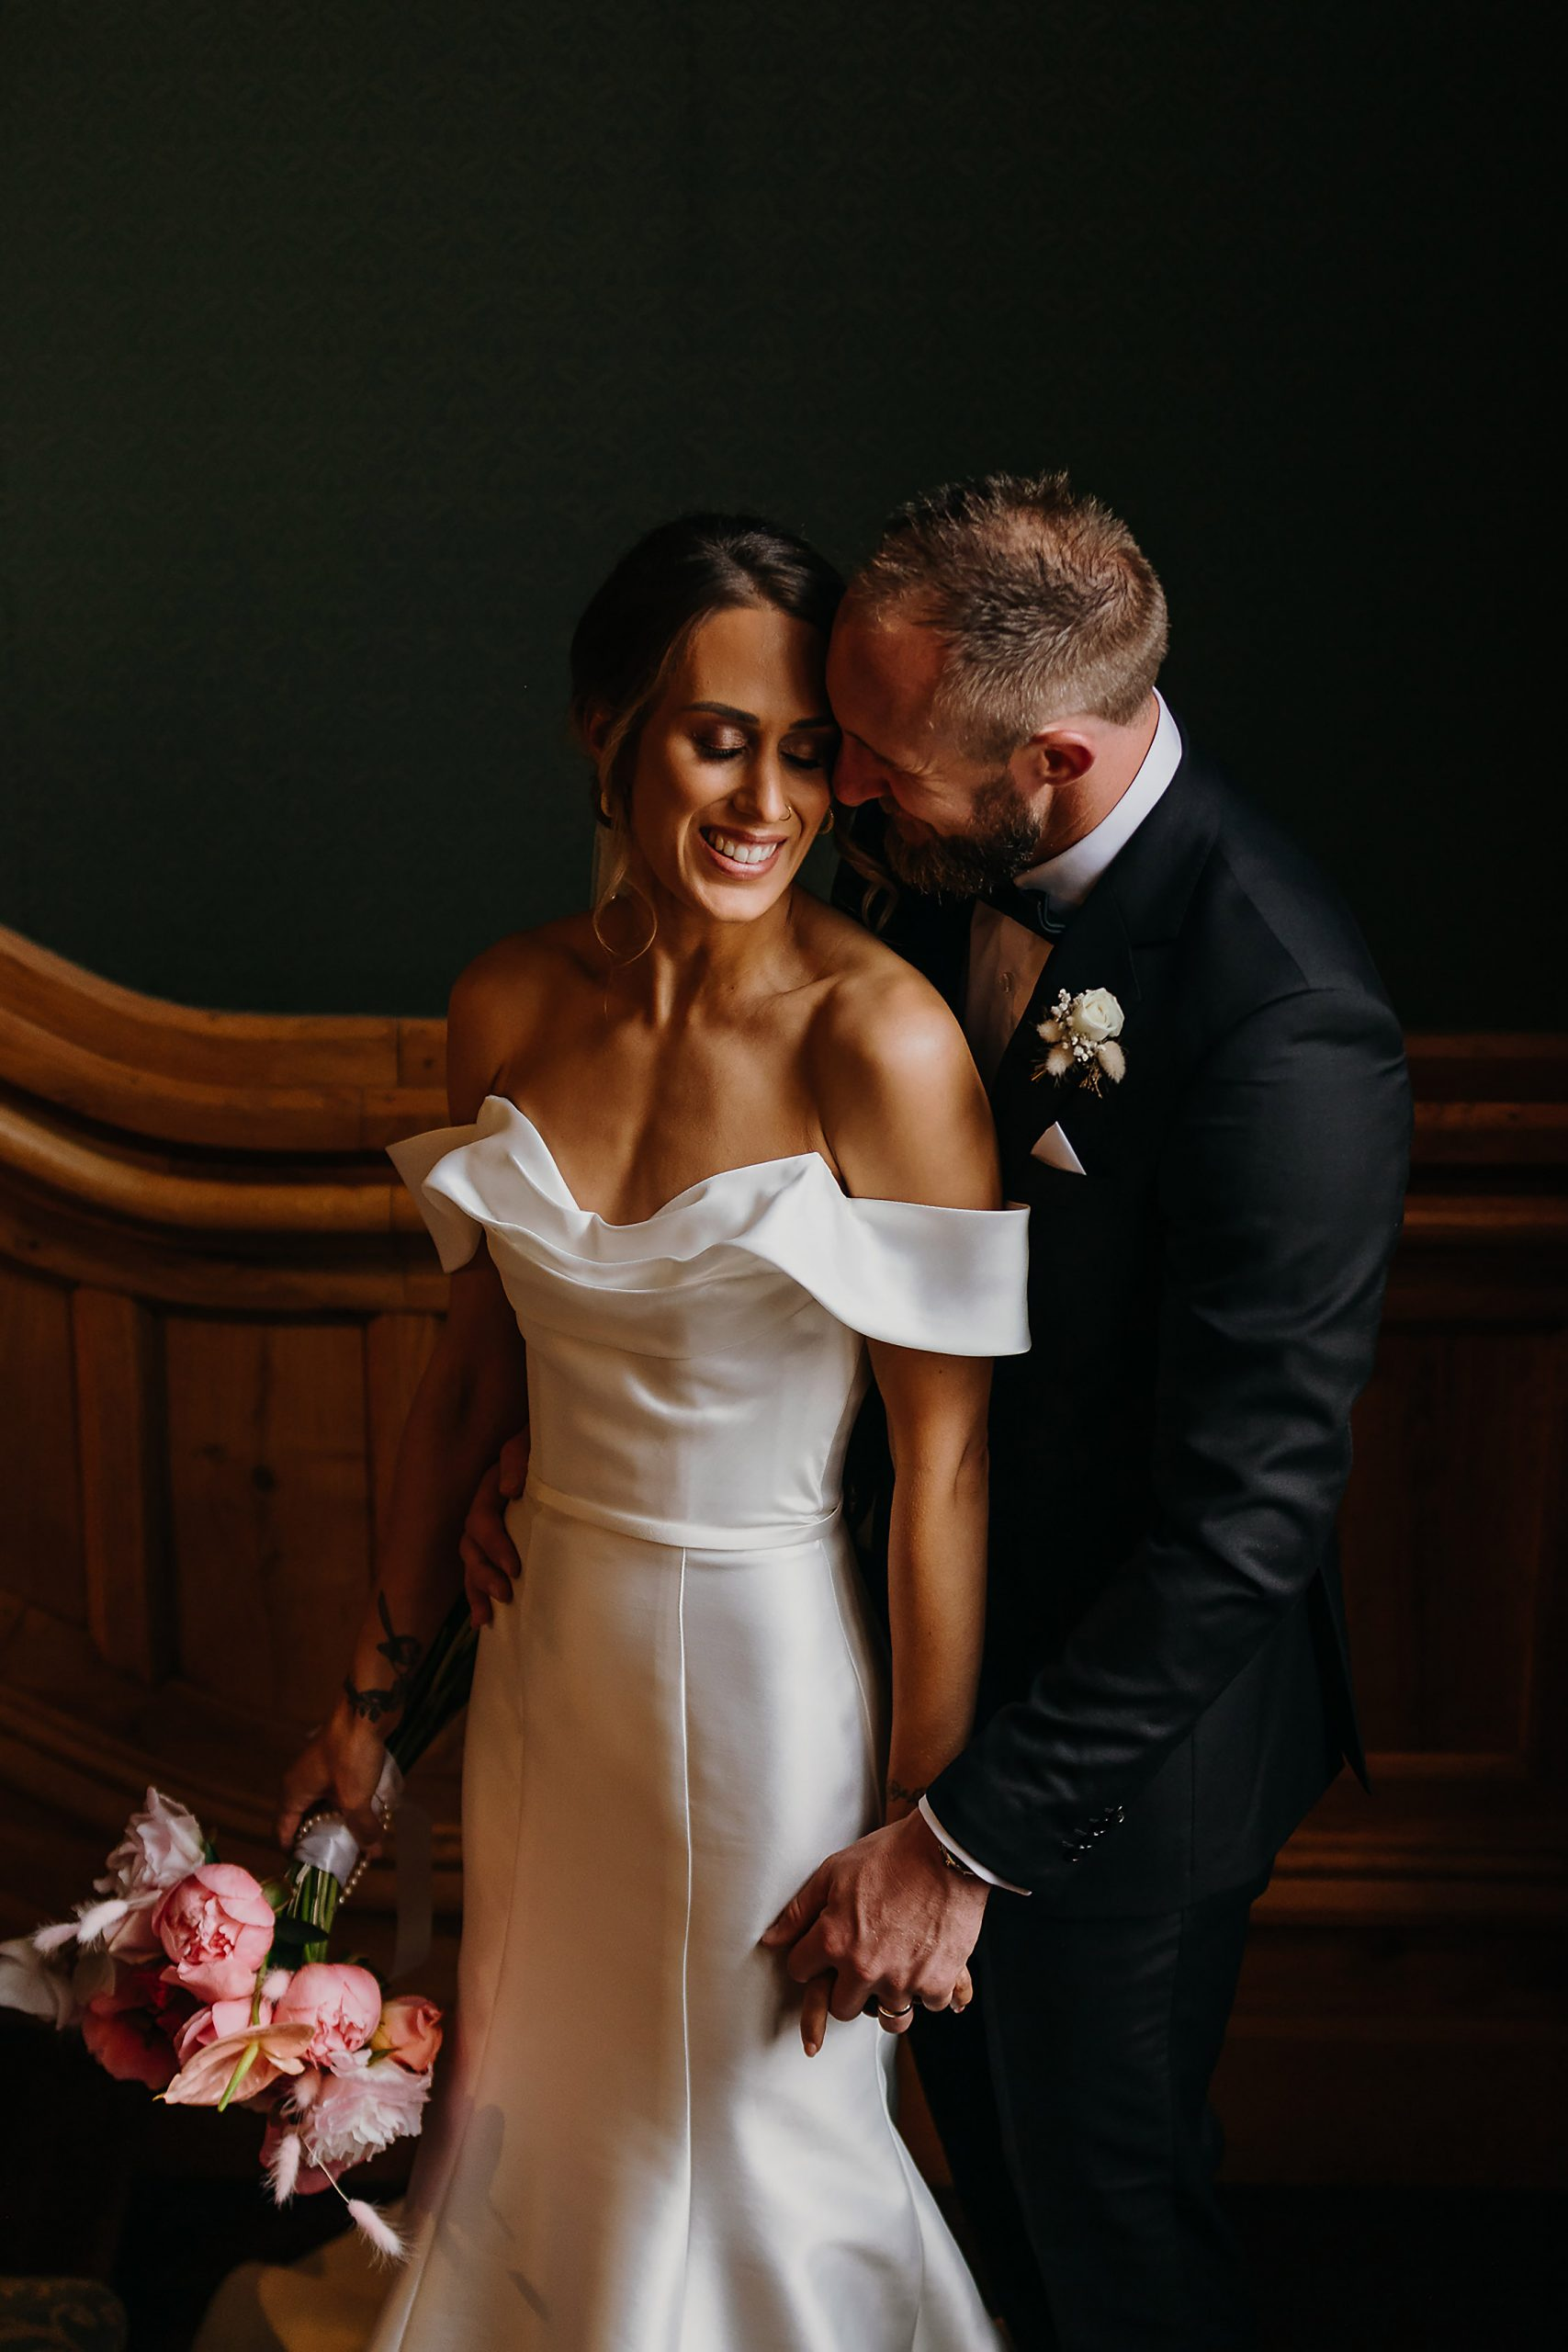 bride and groom portrait riccarton house wedding photographer christchurch